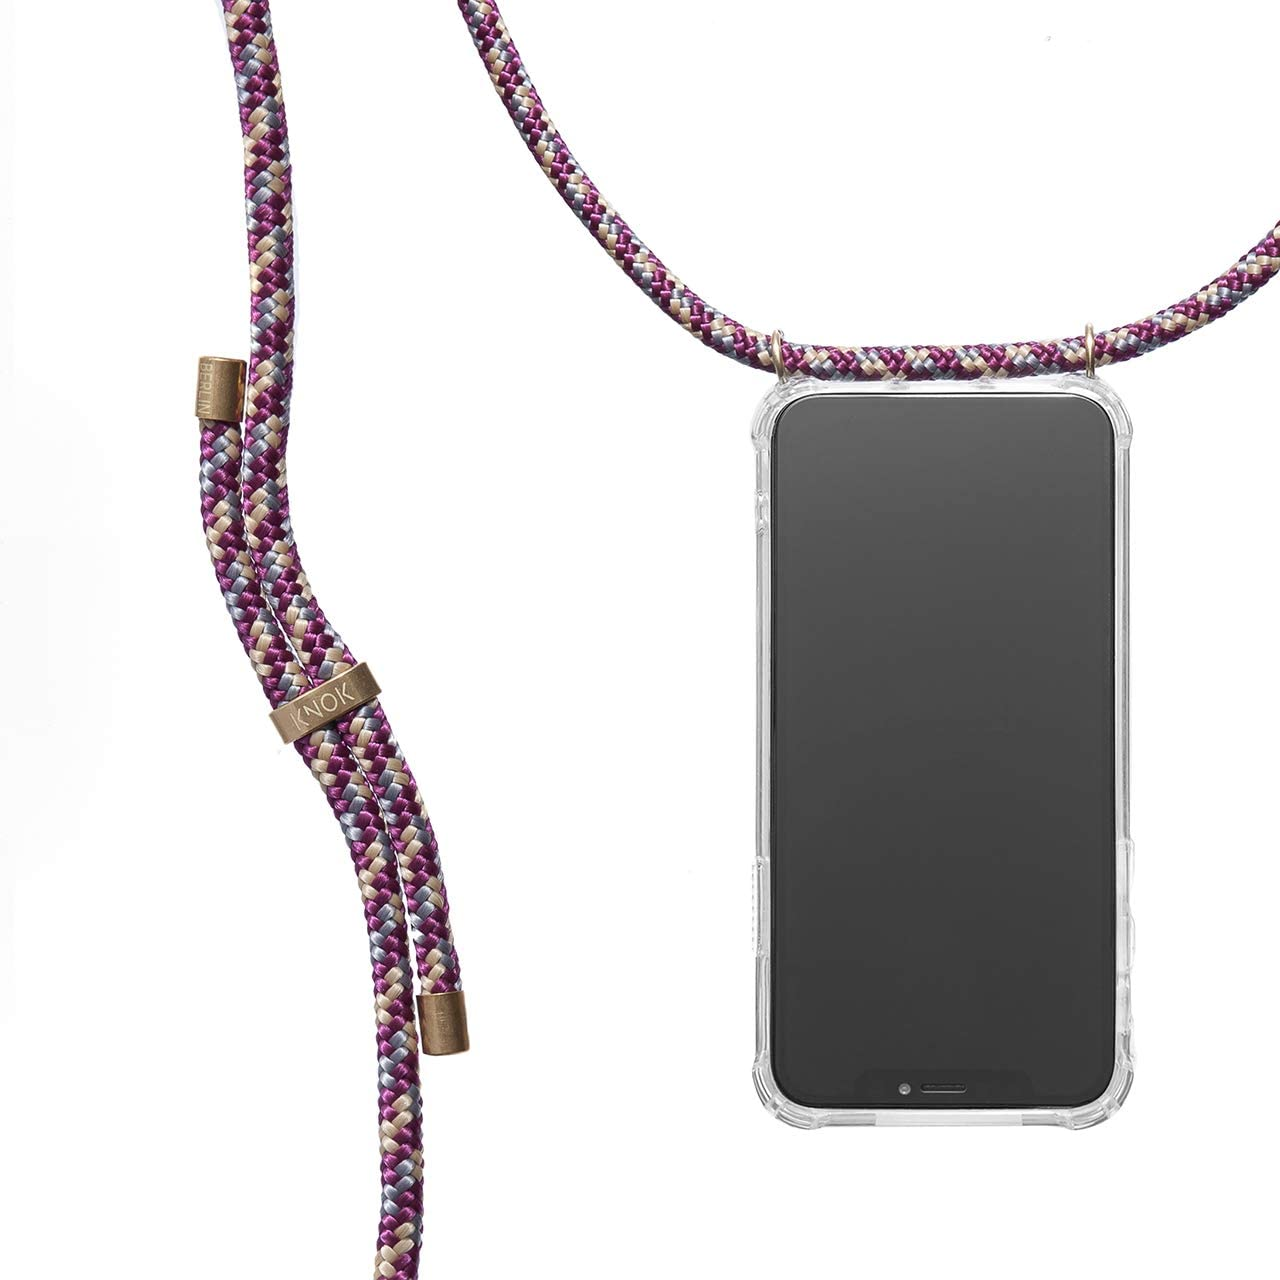 Lanyard Case Holder Mobile Phone Collar Necklace Mobile Phone Cover with Cord Strap KNOK Crossbody case for Huawei P20 Pro Camo Green